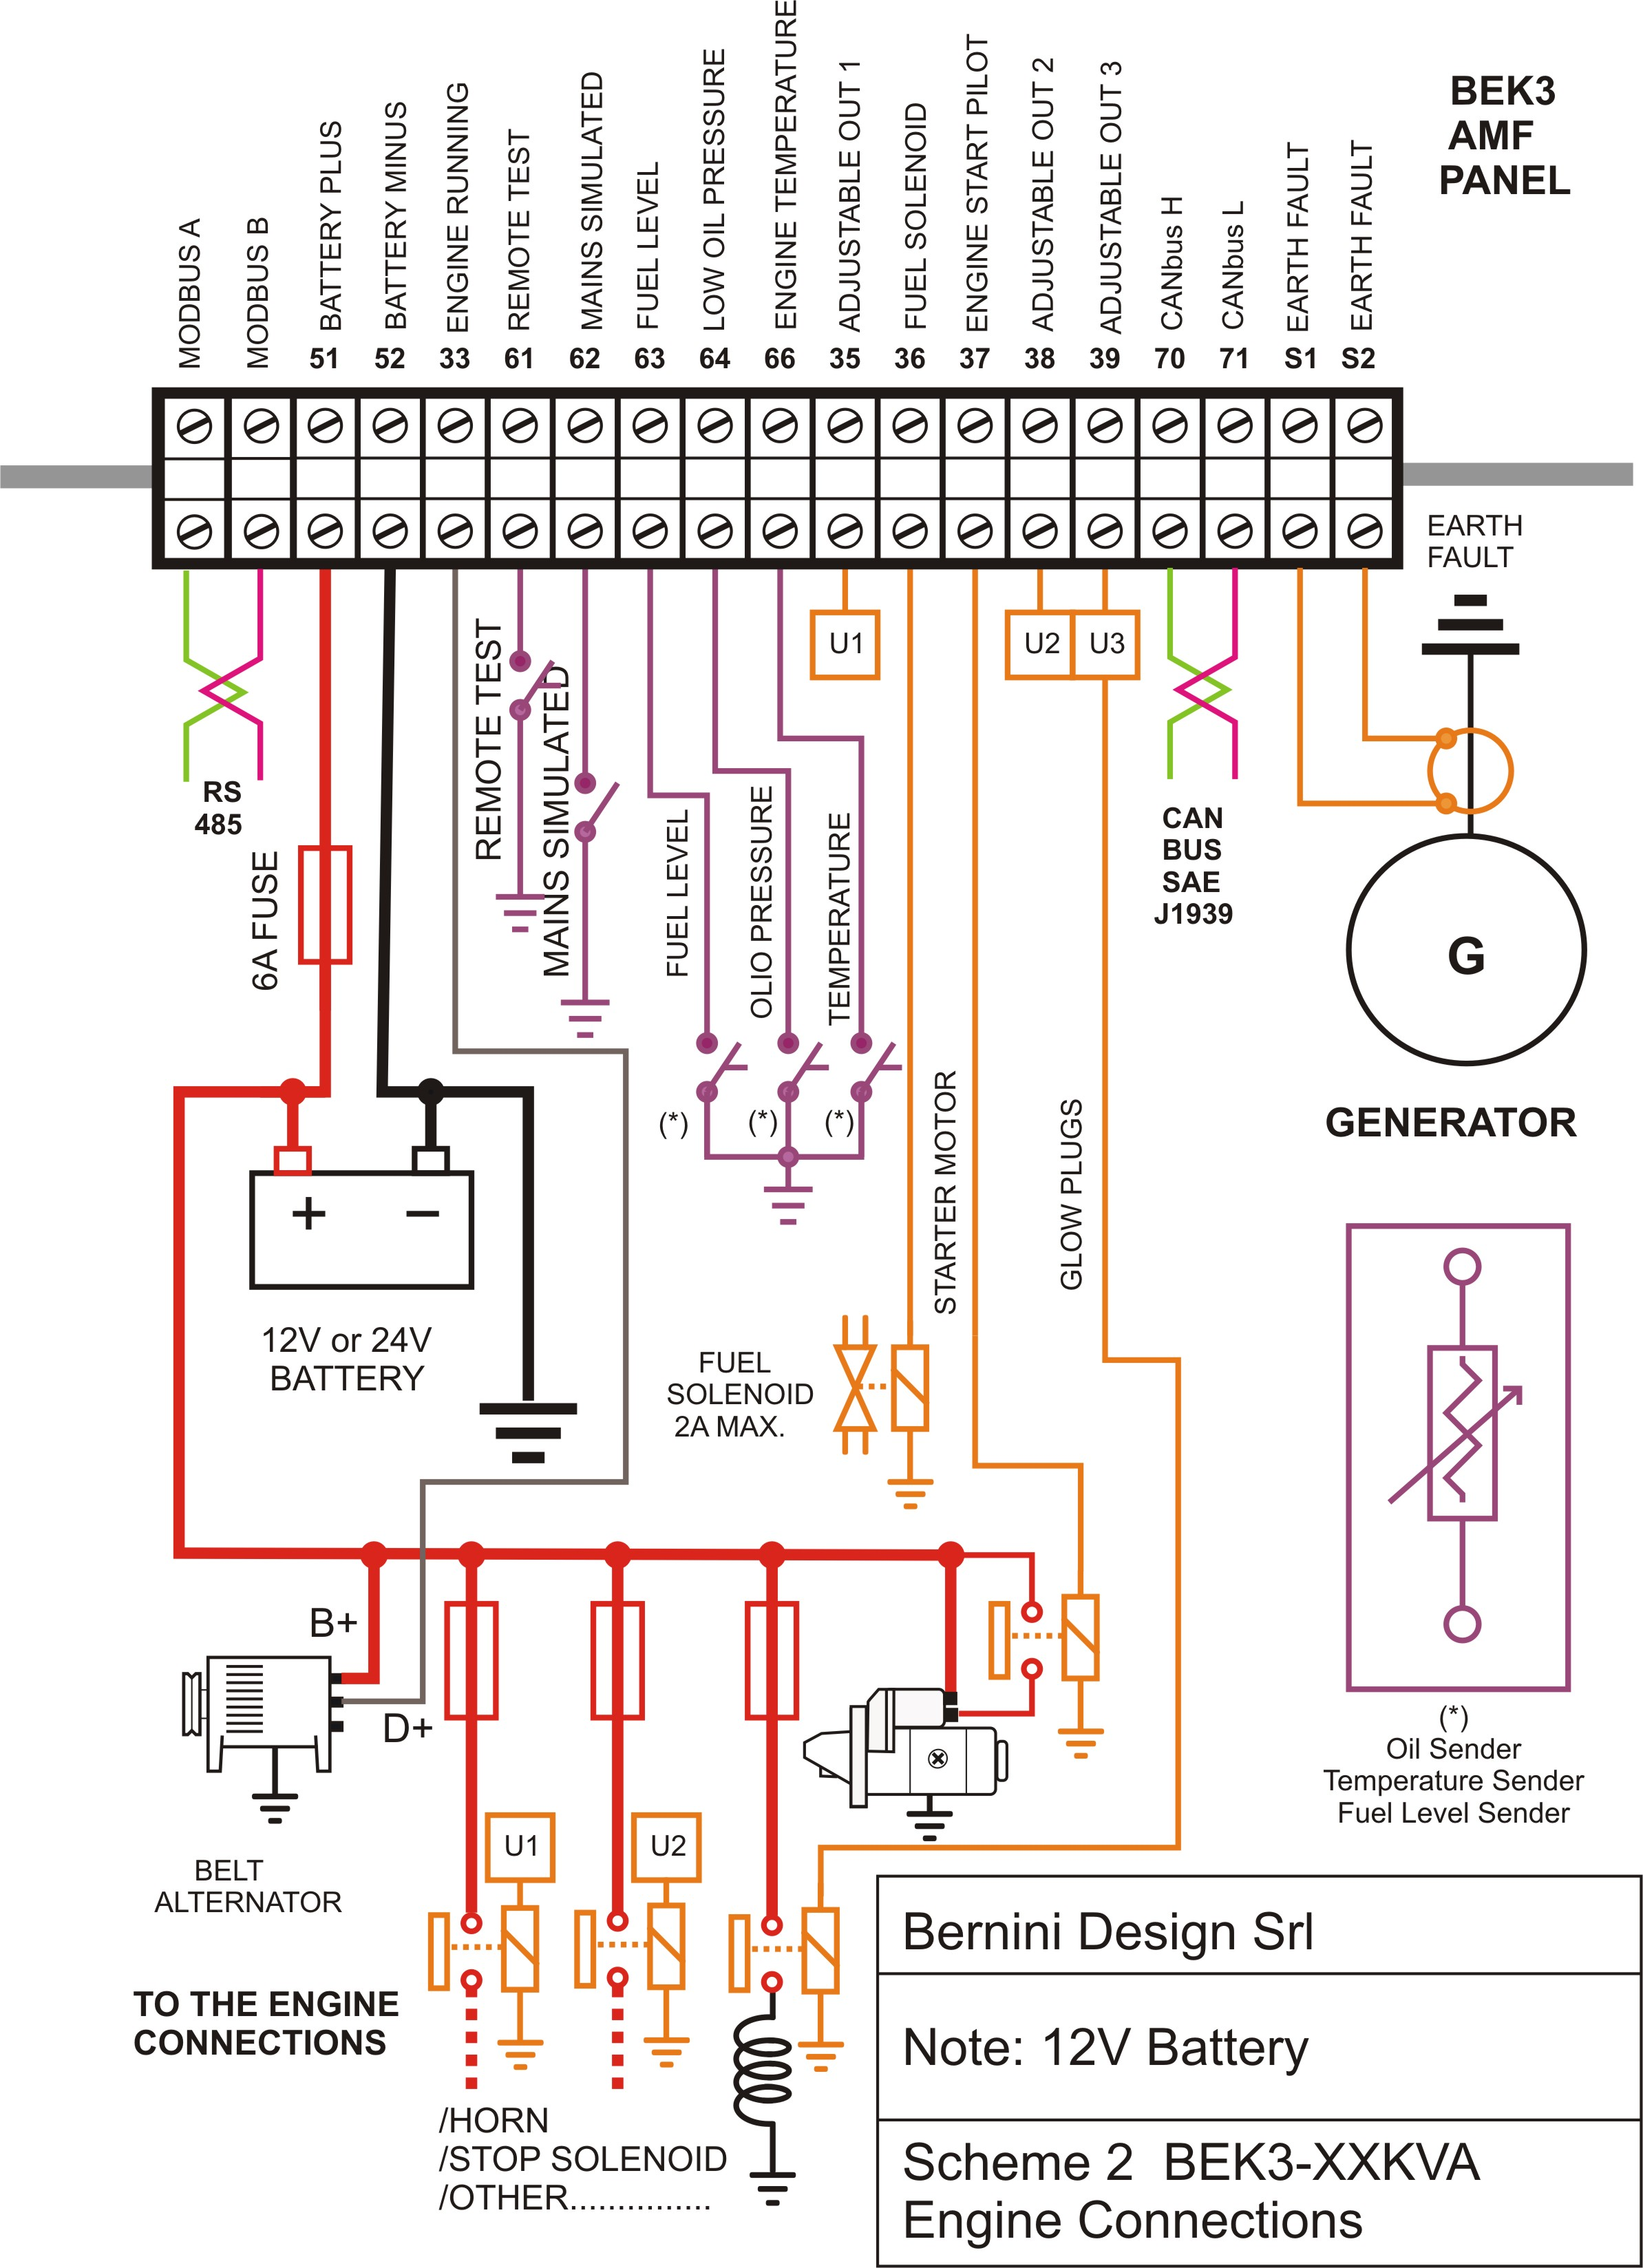 AMF Control Panel Circuit Diagram PDF Engine Connections plc control panel wiring diagram generator wiring diagram \u2022 wiring how to read plc wiring diagrams at nearapp.co